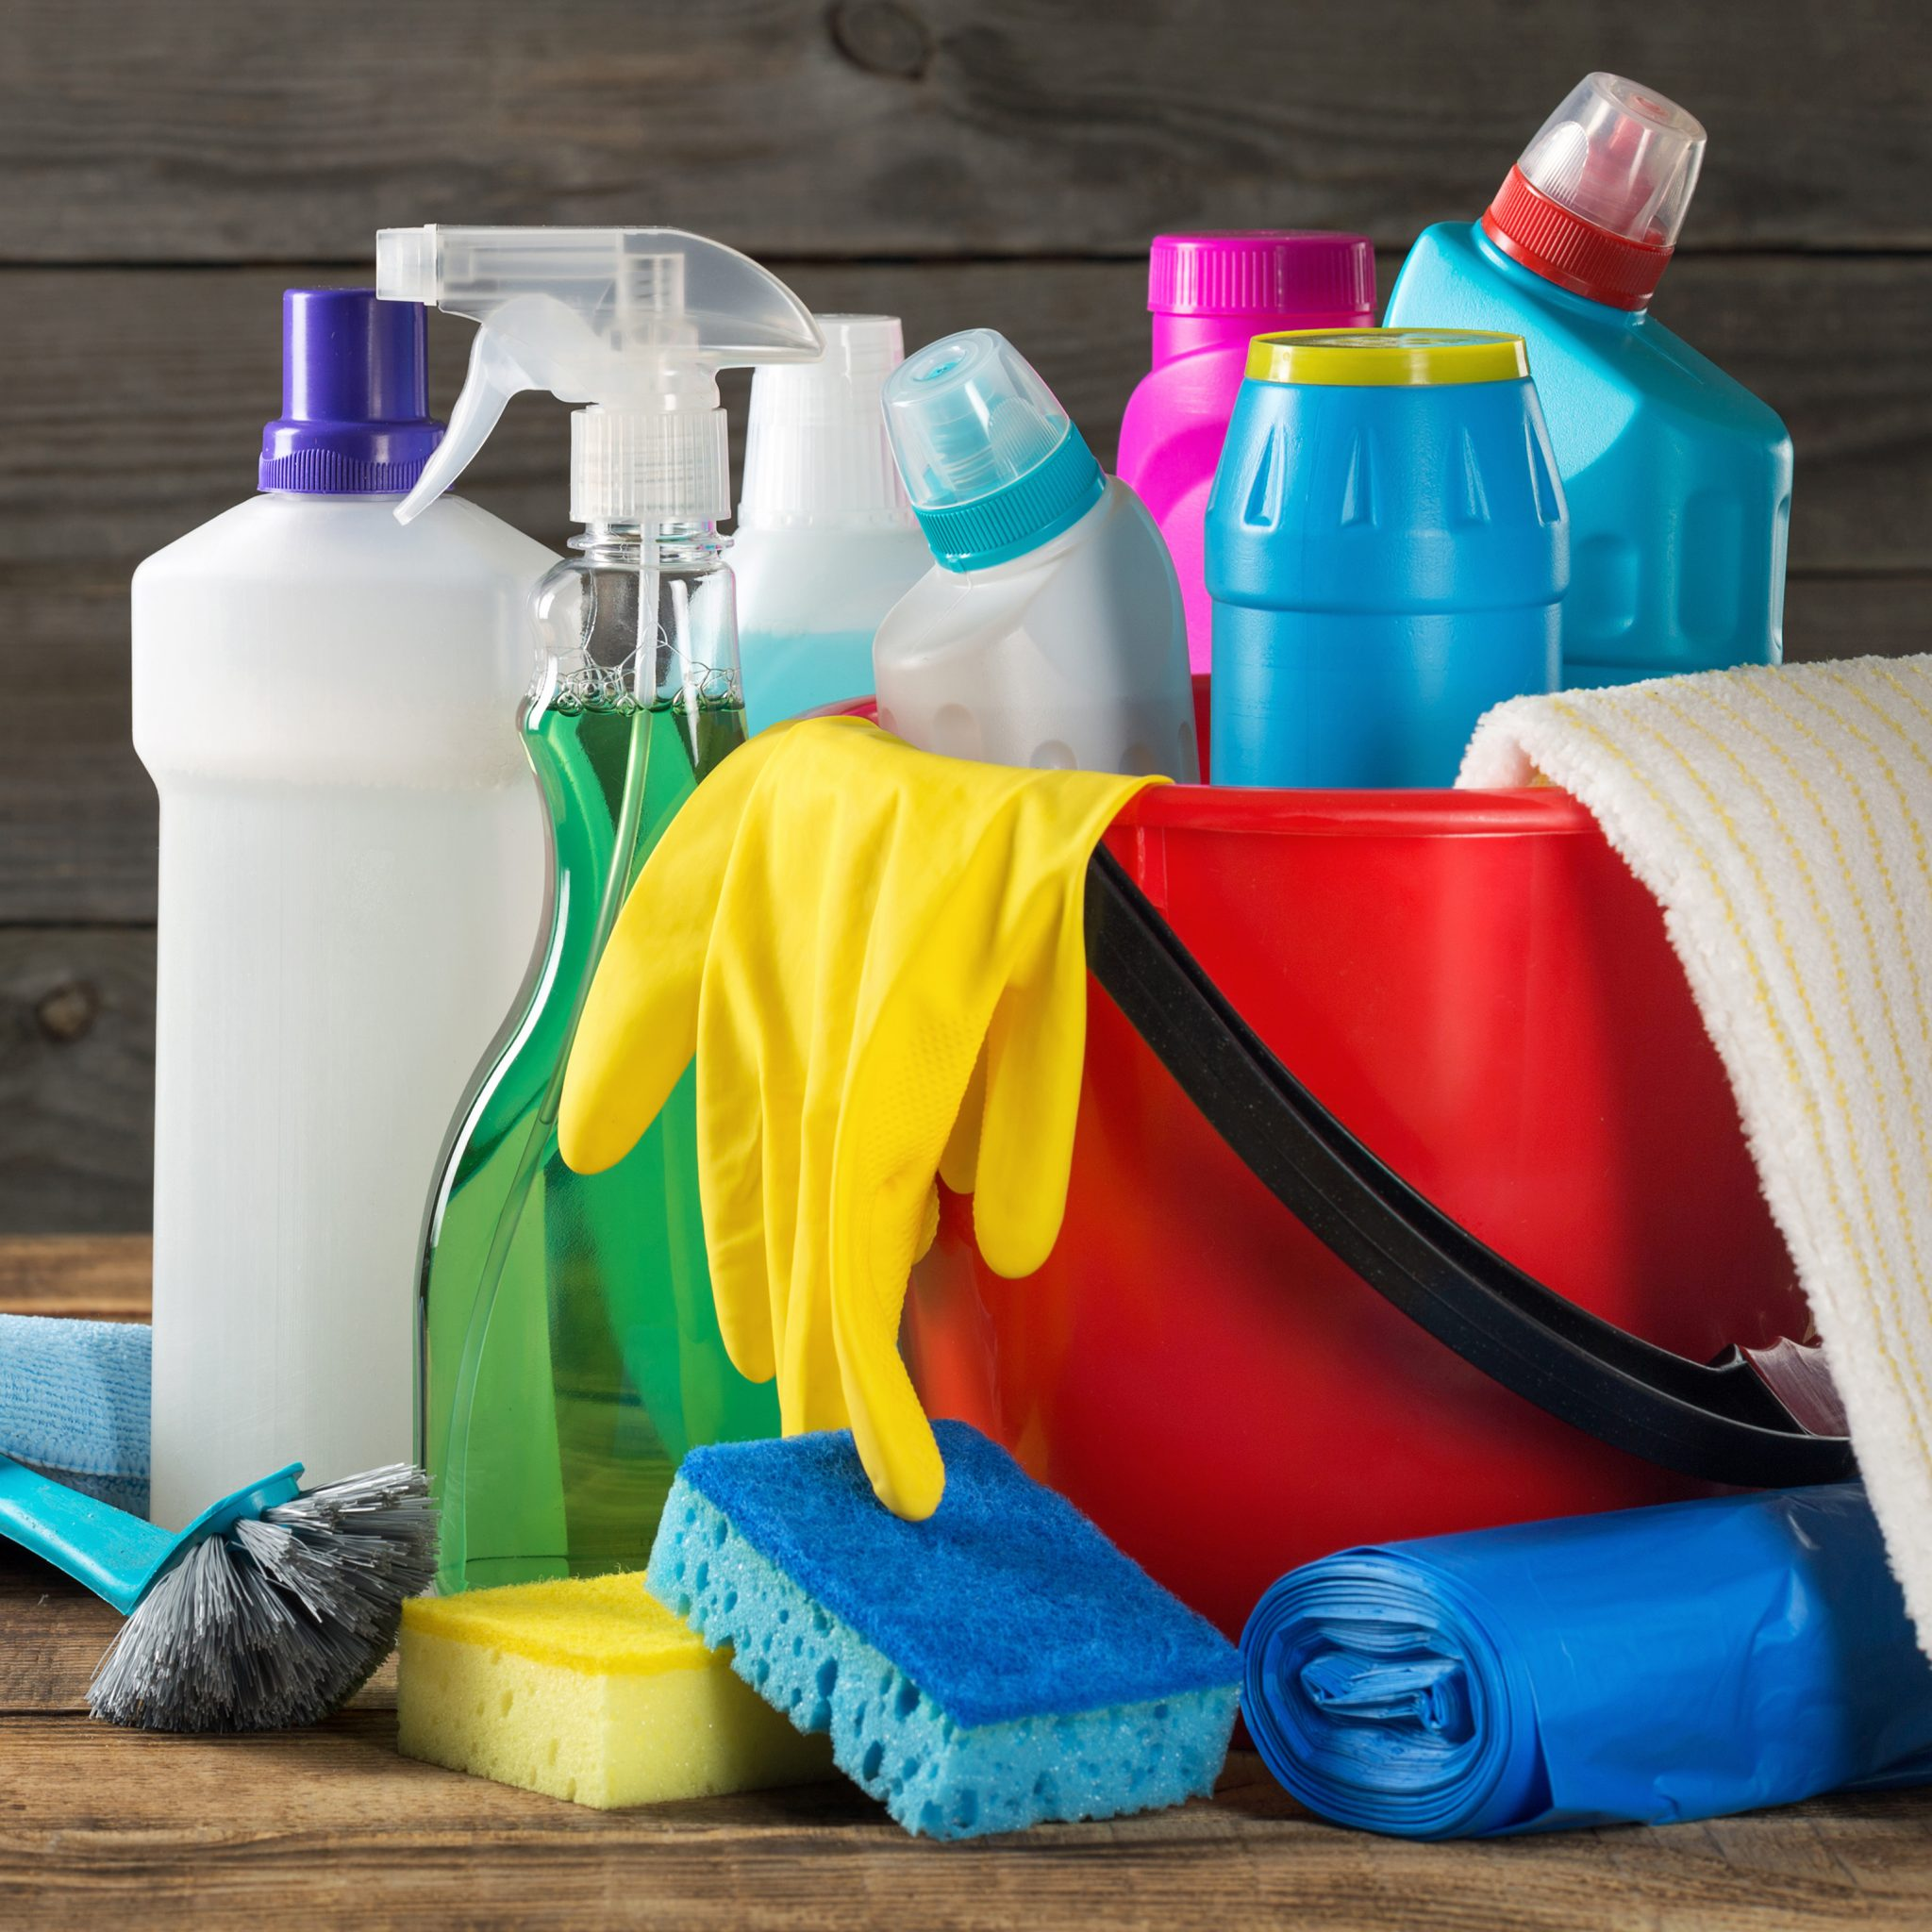 Variety house cleaning products